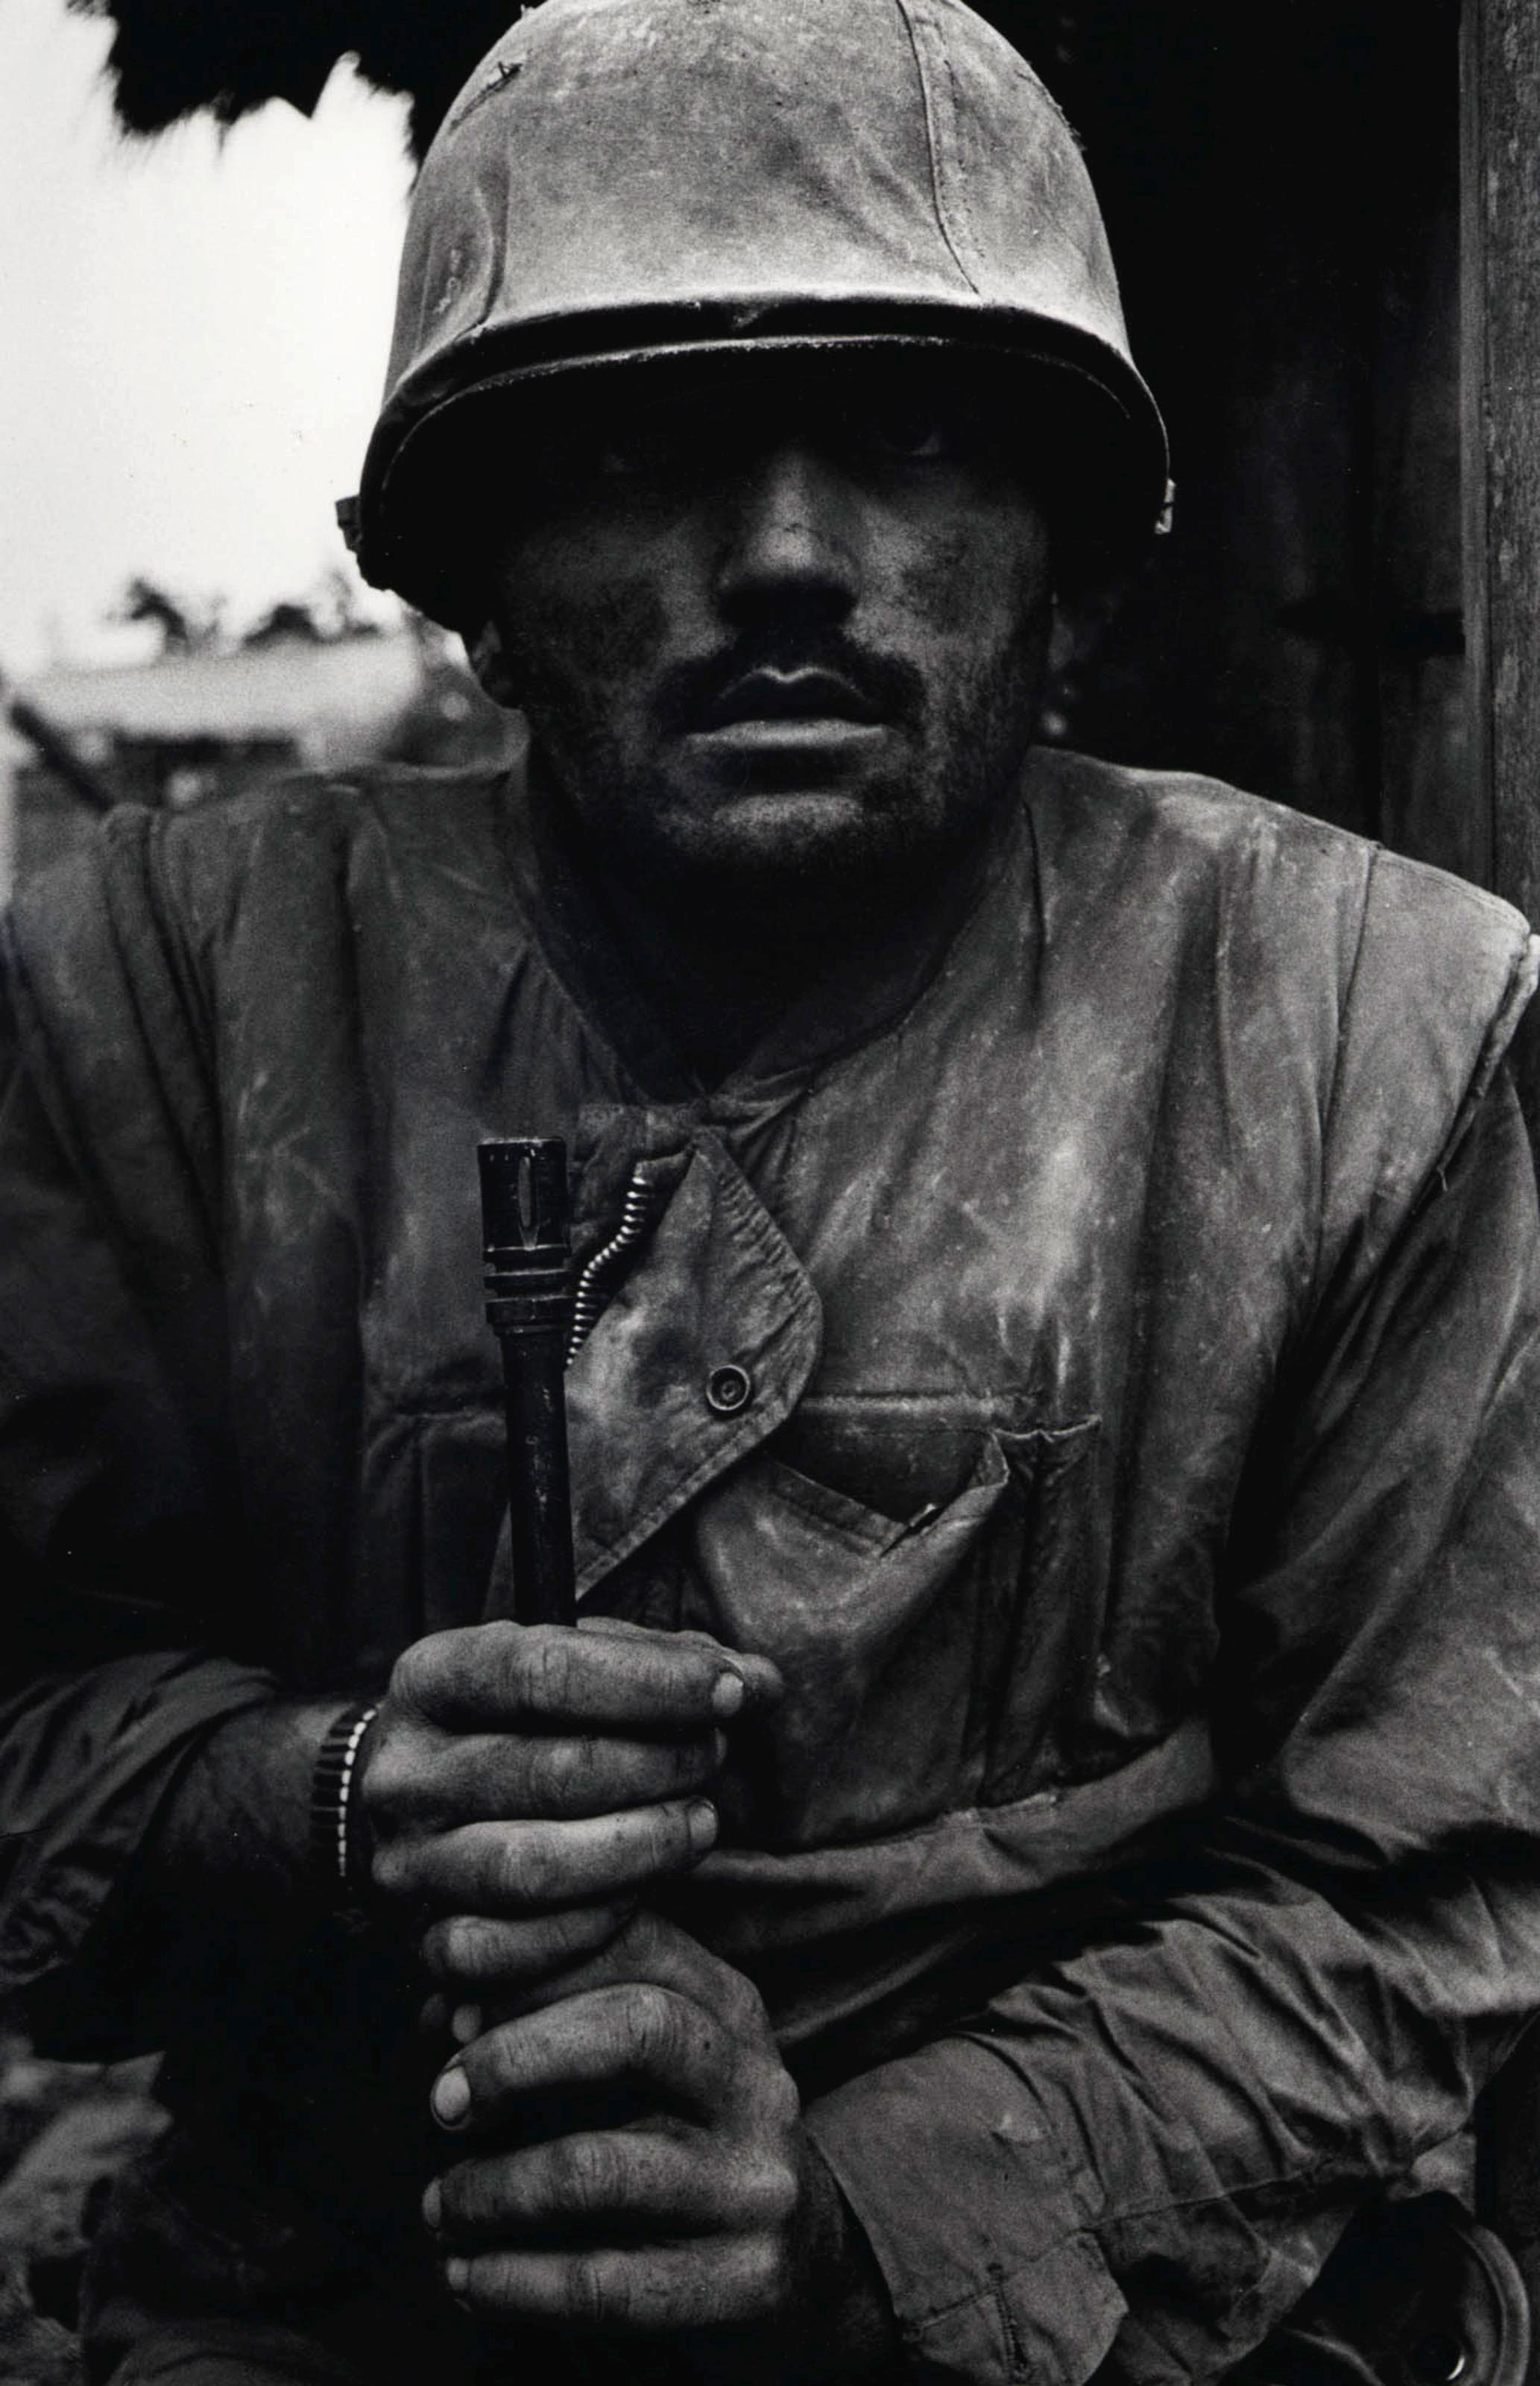 Shell-shocked Marine, Vietnam, Hue, 1968